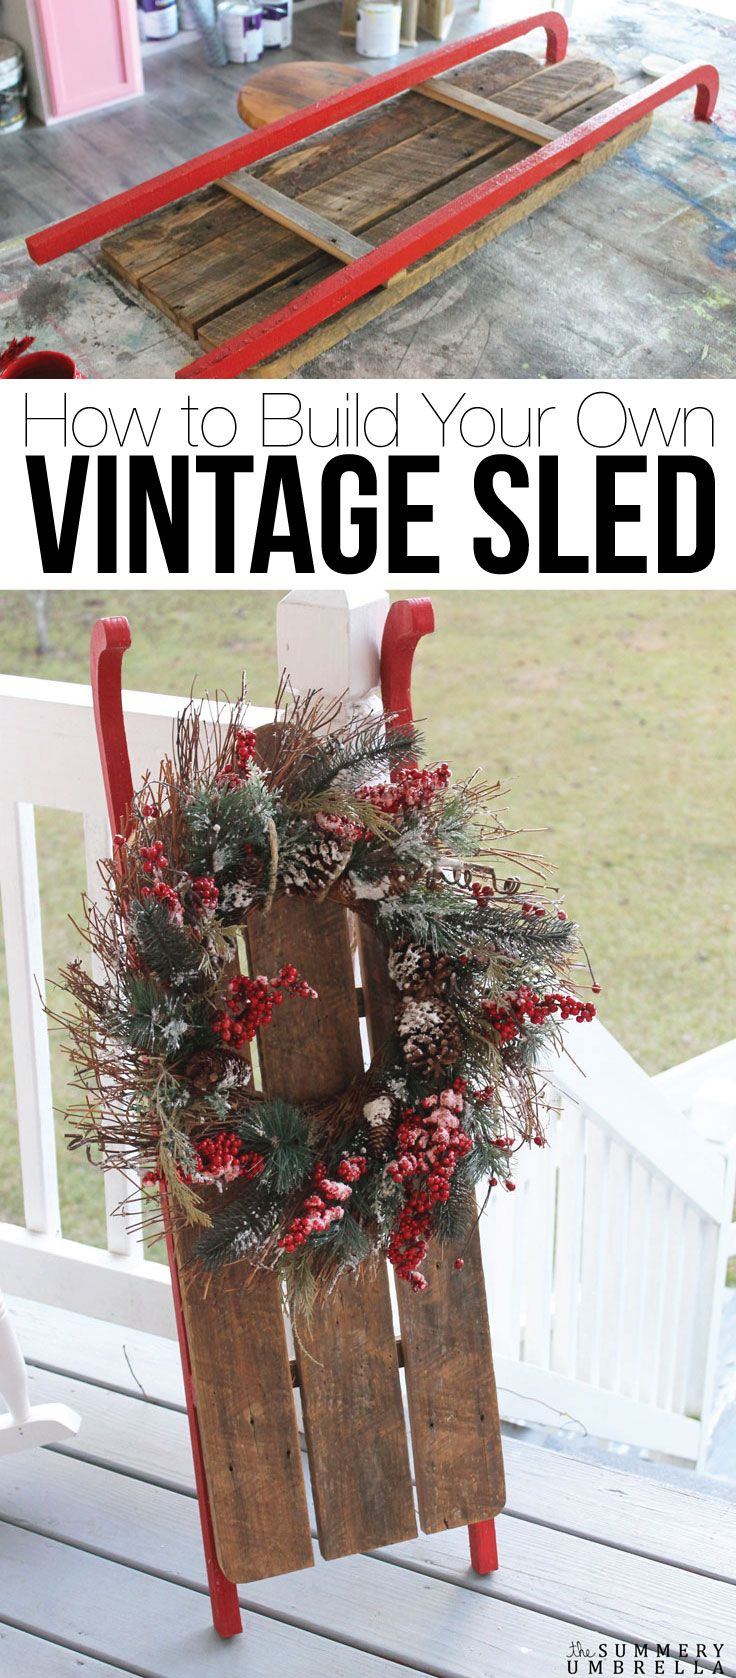 Have you been craving your very own vintage sled, but need a more wallet-friendly version? Don't miss out--full details right this way!